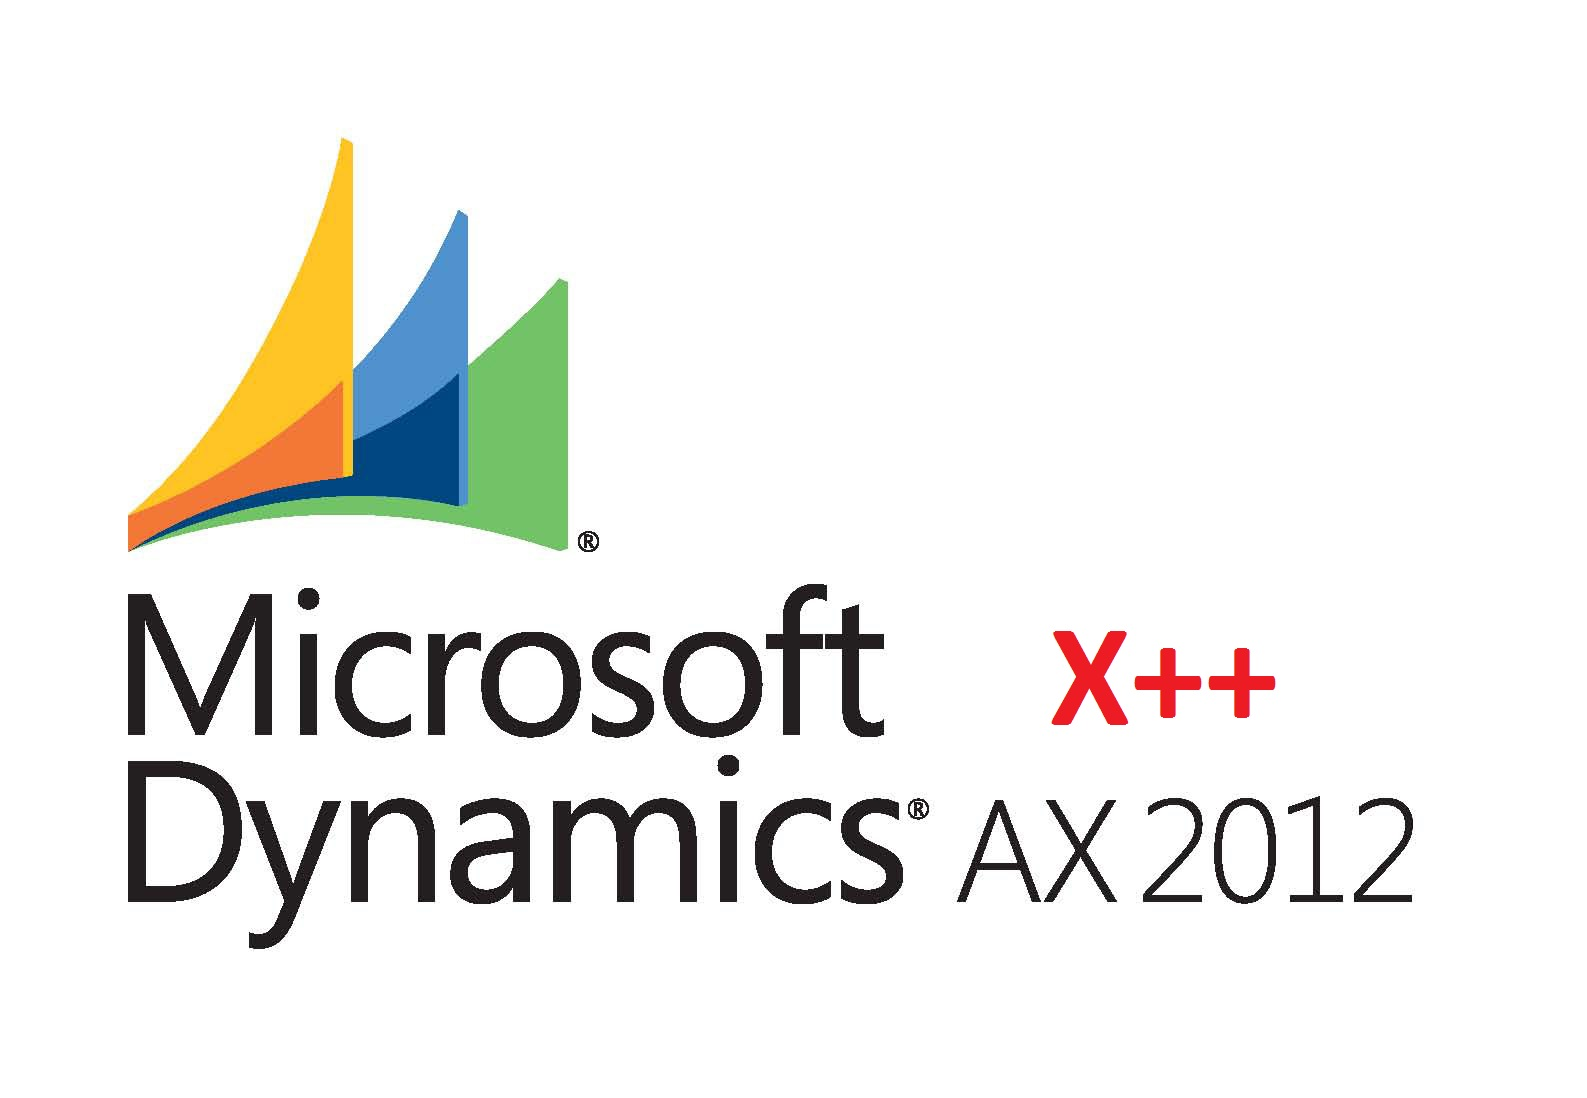 Workflow in Dynamics AX 2012